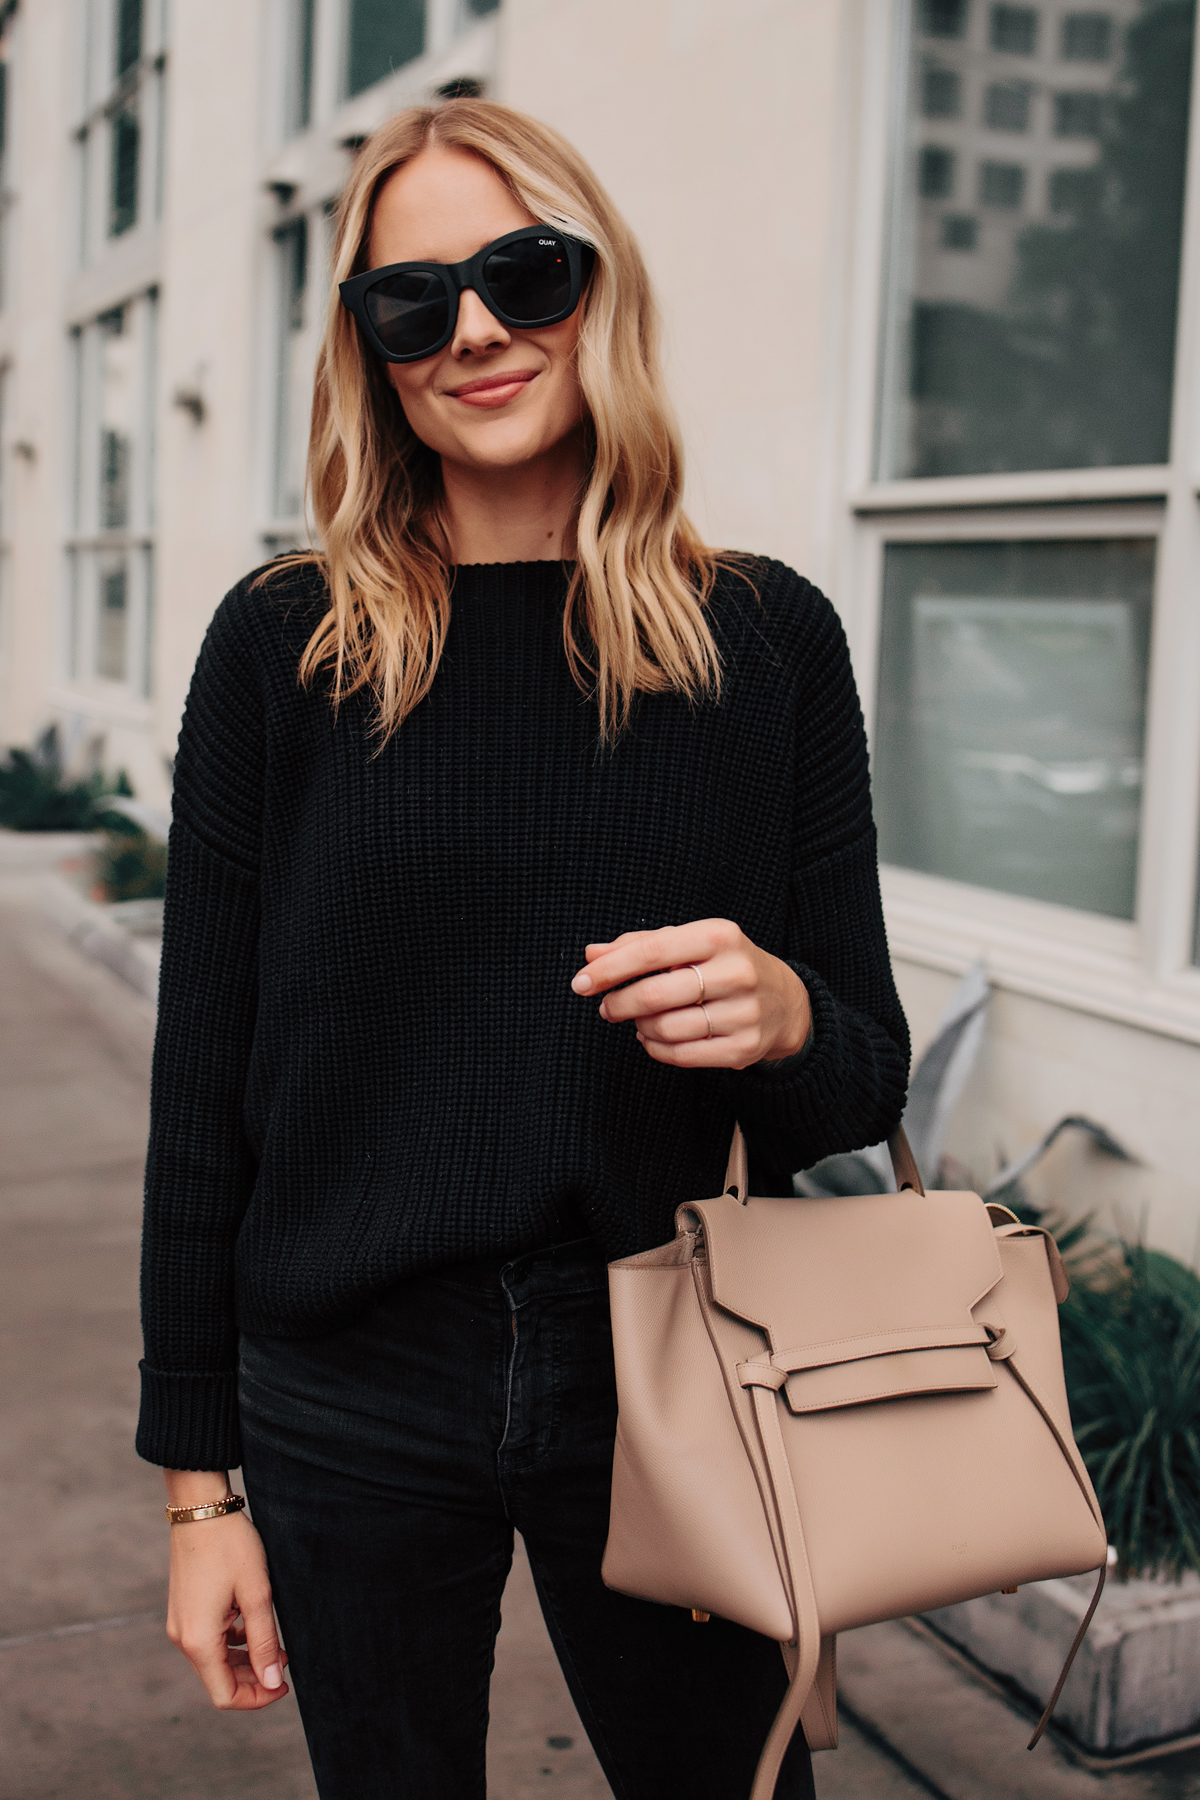 Blonde Woman Wearing French Connection Black Oversized Sweater Celine Mini Belt Bag Quay After Hours Black Sunglasses Fashion Jackson San Diego Fashion Blogger Street Style